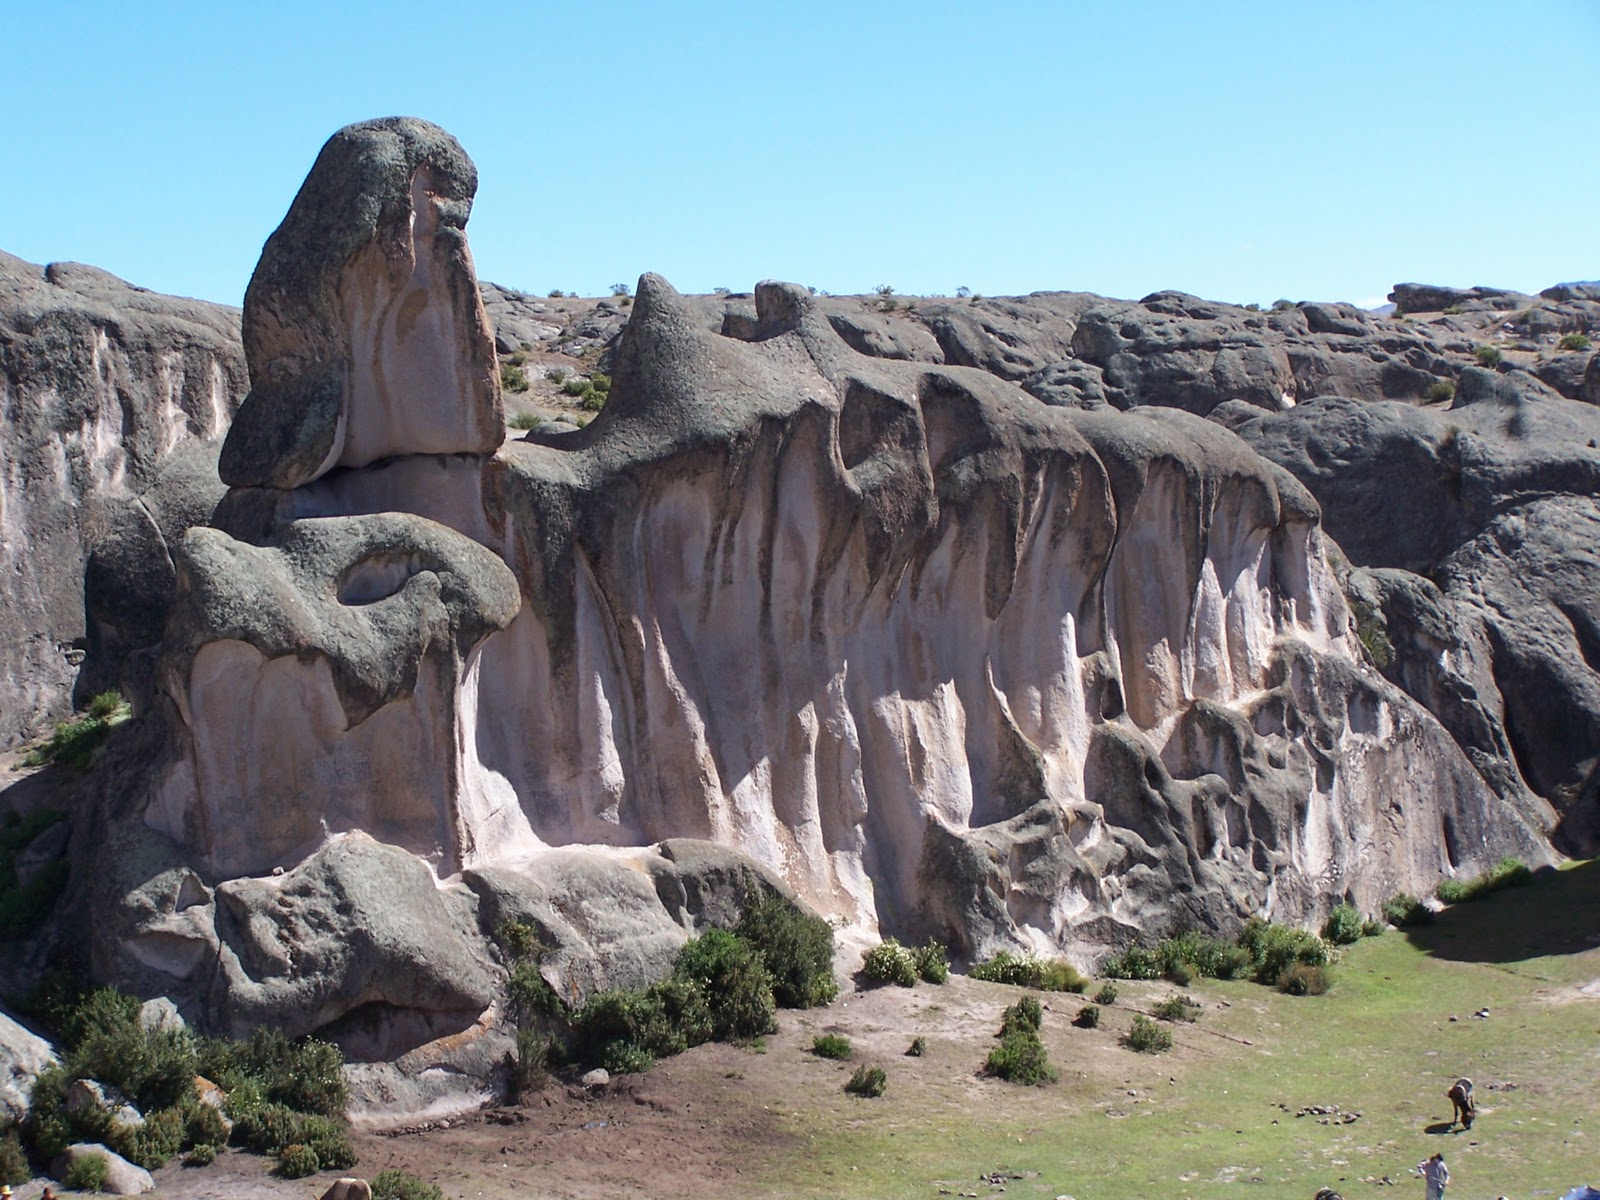 Markawasi Stone Forest Time Travel